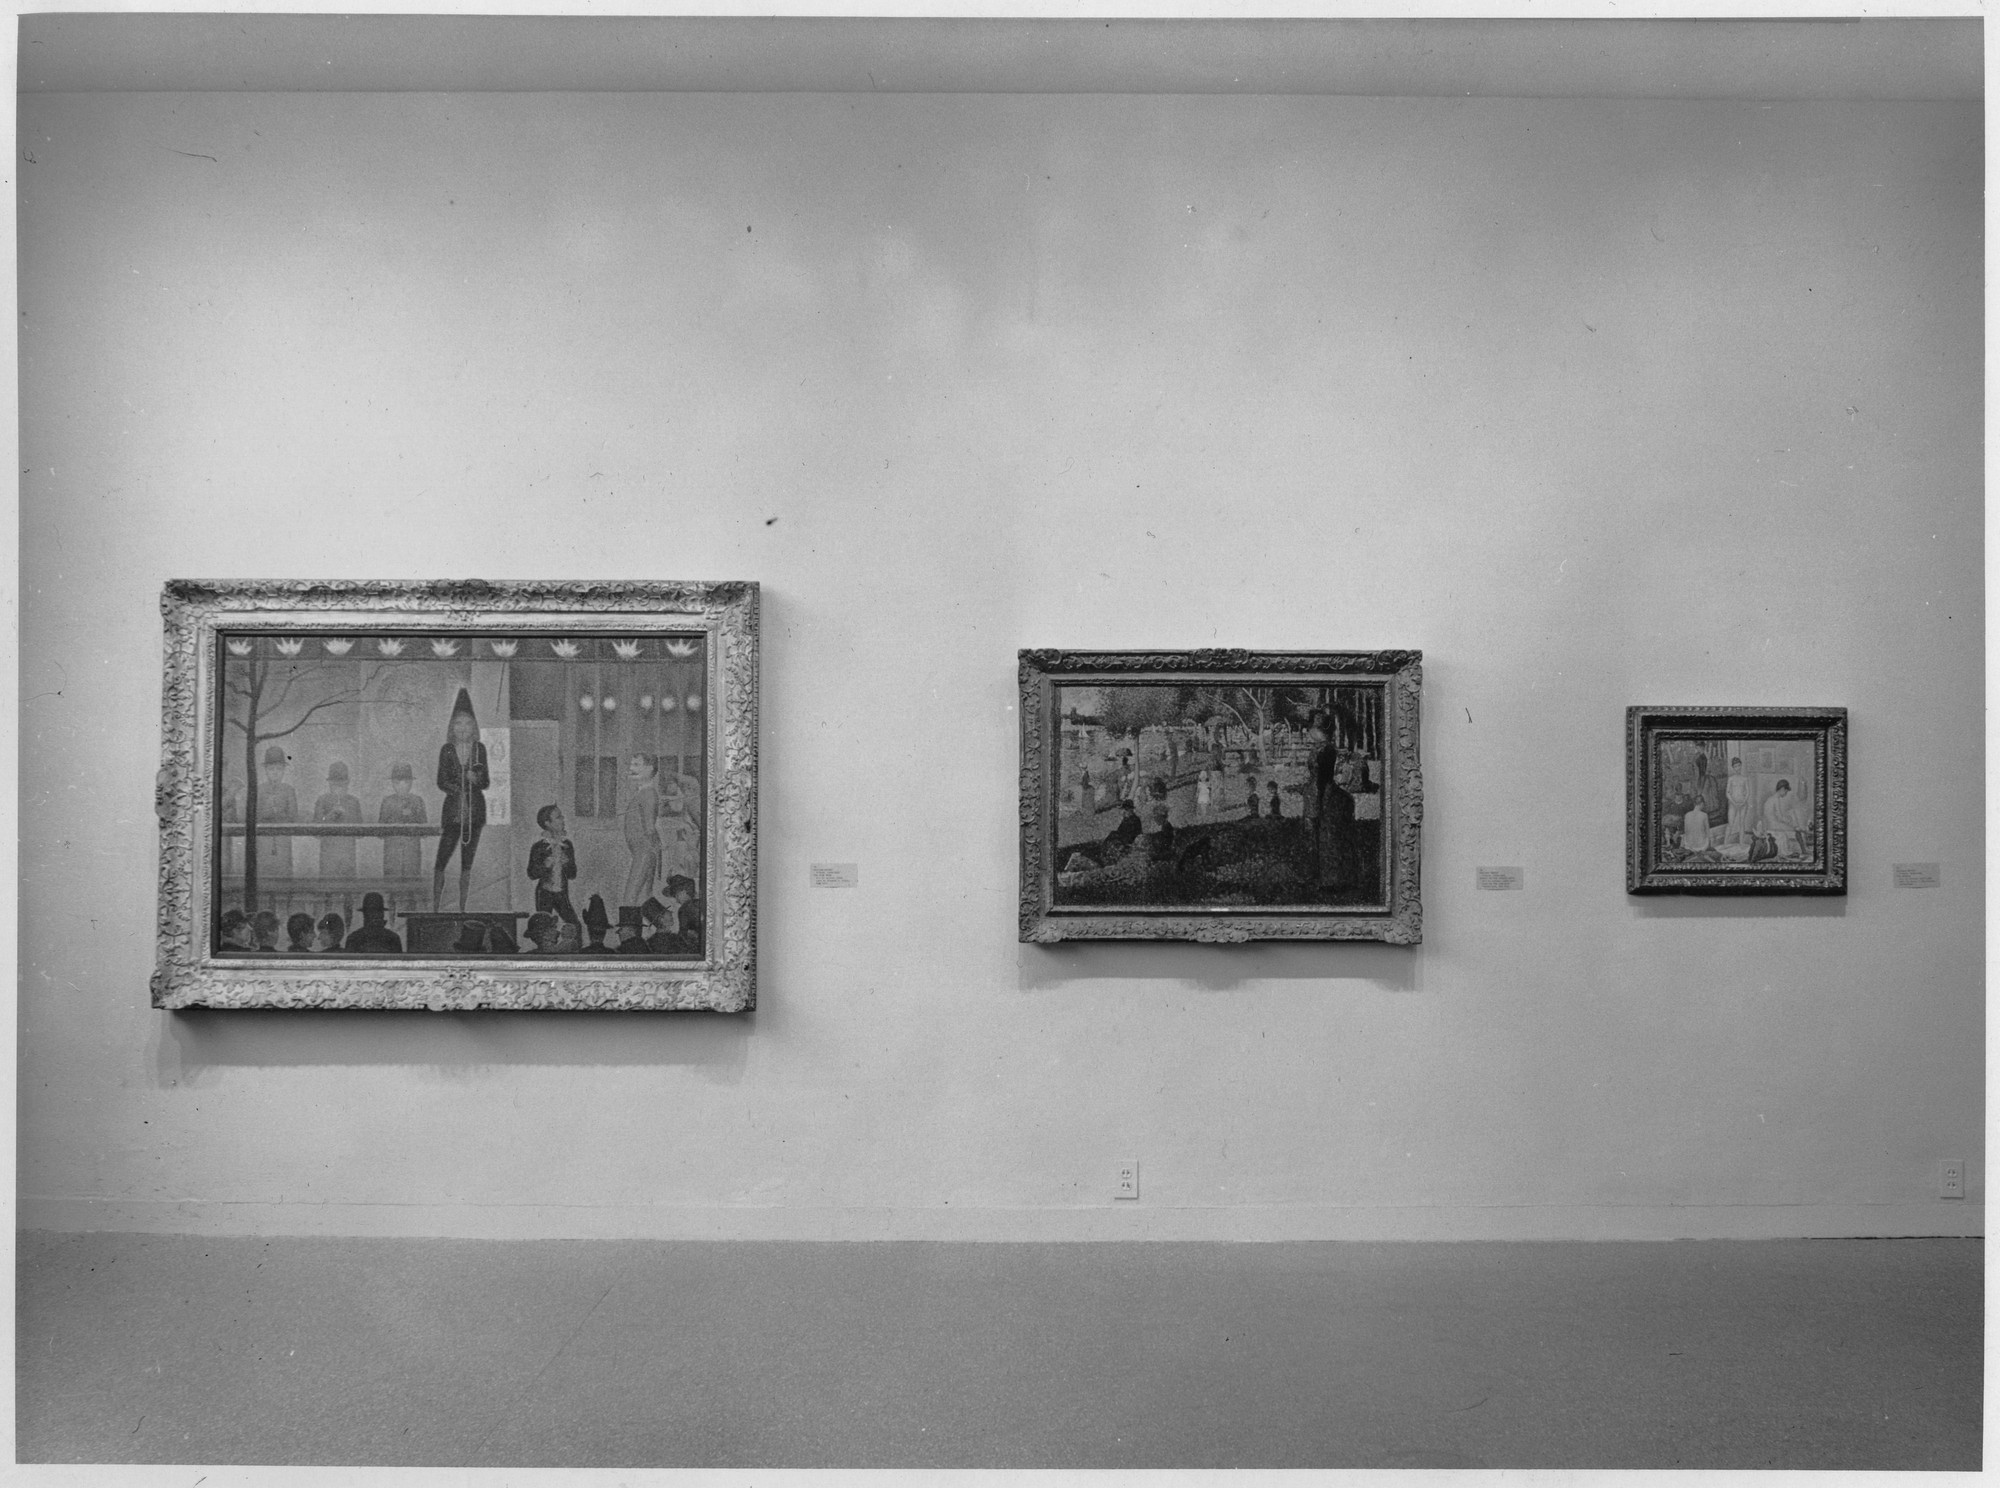 "Installation view of the exhibition, ""Painting, Sculpture, Prints,"" in the series, ""Art in Our Time:  10th Anniversary Exhibition."" May 10, 1939–September 30, 1939. Photographic Archive. The Museum of Modern Art Archives, New York. IN85.1. Photograph by Eliot Elisofon."